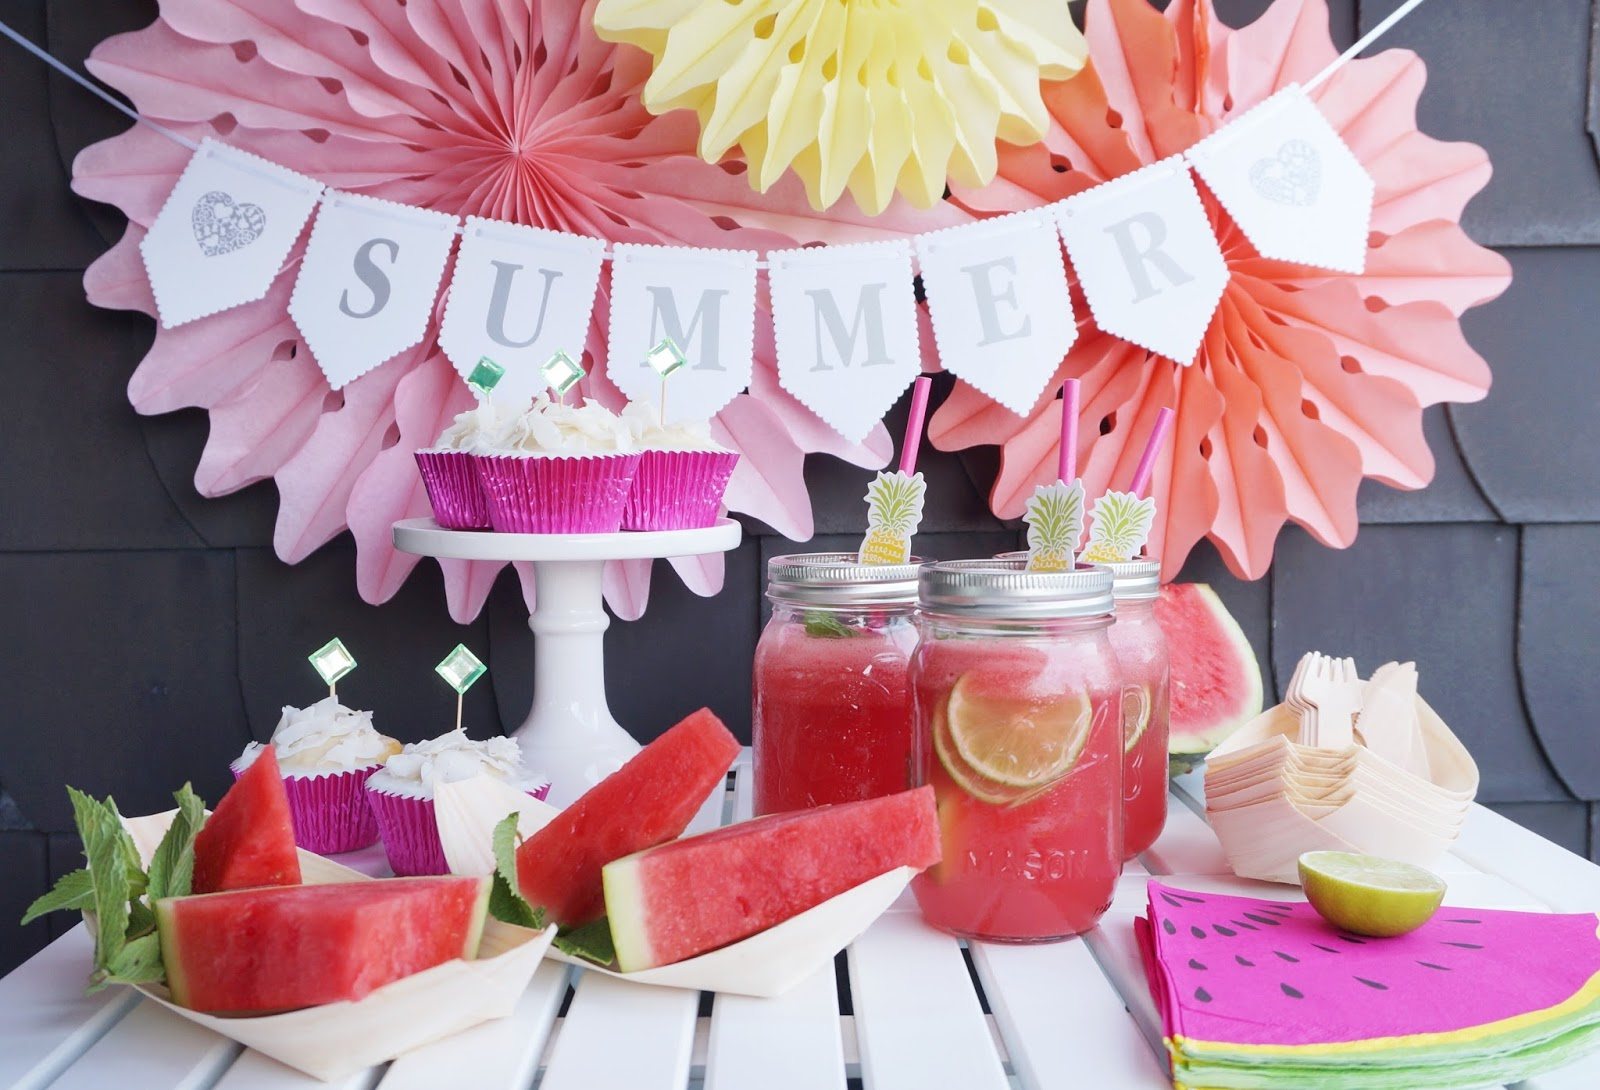 Deko Sommerparty Sommerparty Mit Melonenlimonade And Coconut Cupcakes